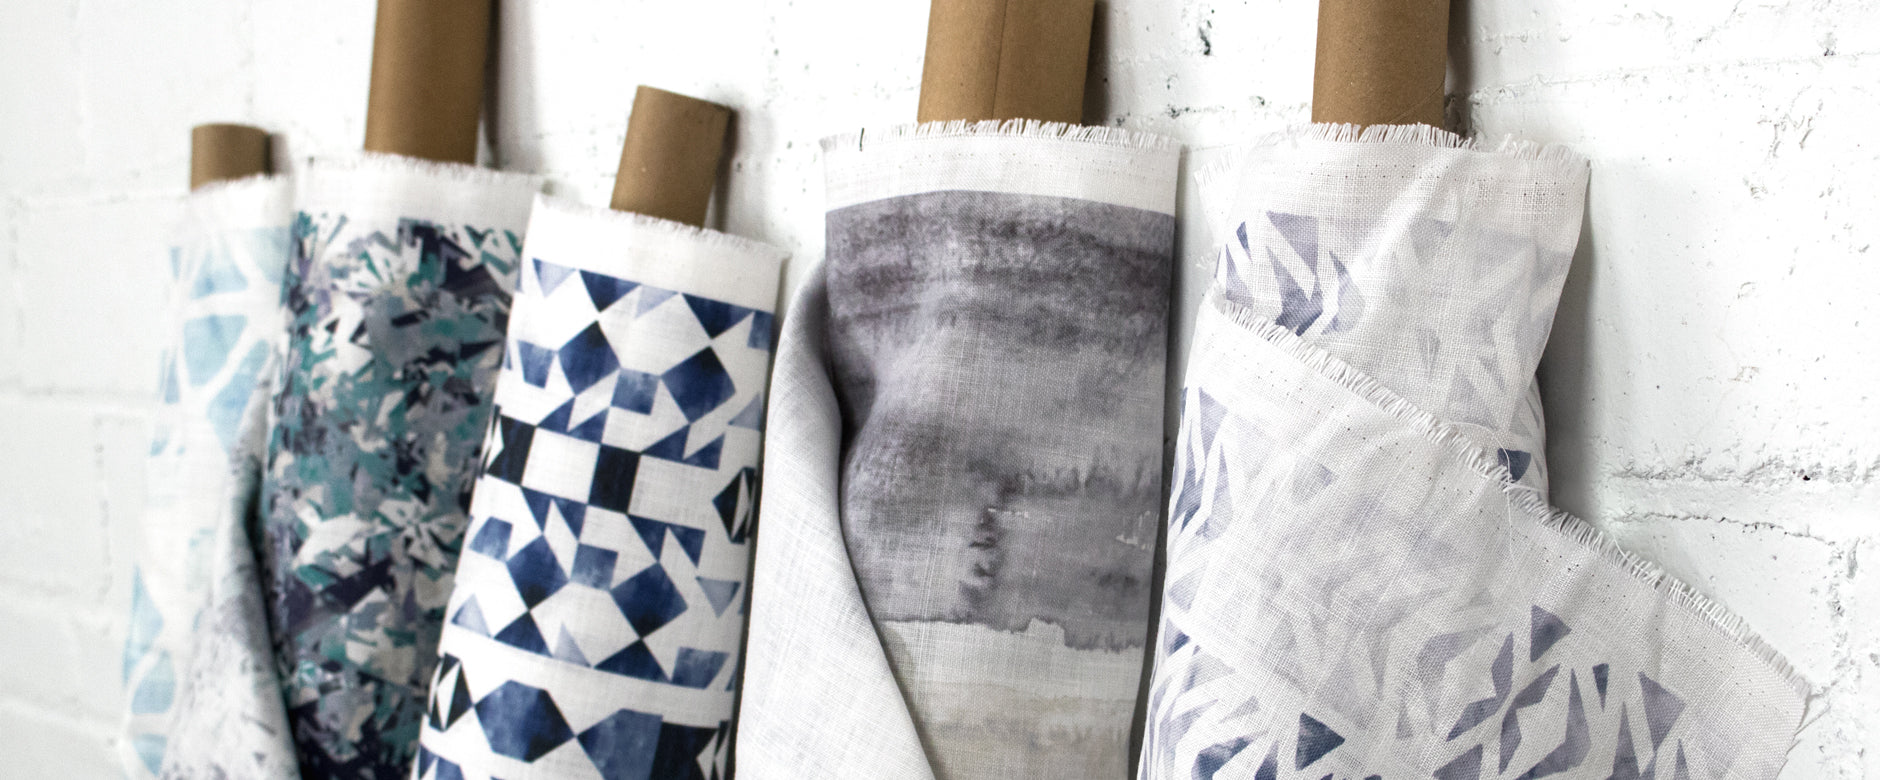 Designer Fabric by the Yard | Modern Home Textiles │ Savannah Hayes